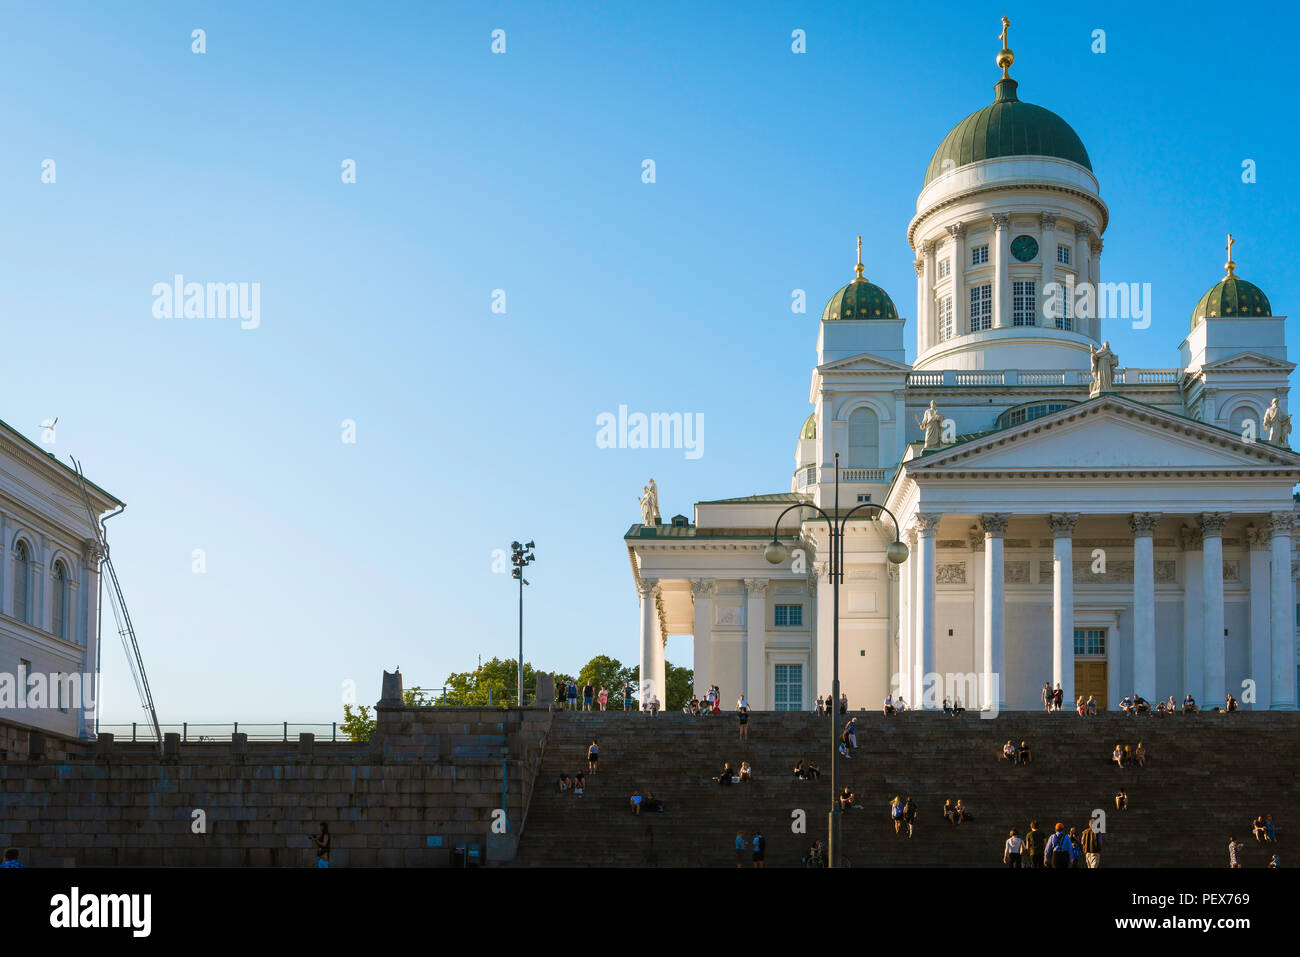 Finland tourism summer, view at sunset of the Lutheran Cathedral in Helsinki with tourists sitting on or ascending the grand staircase to its entrance. - Stock Image